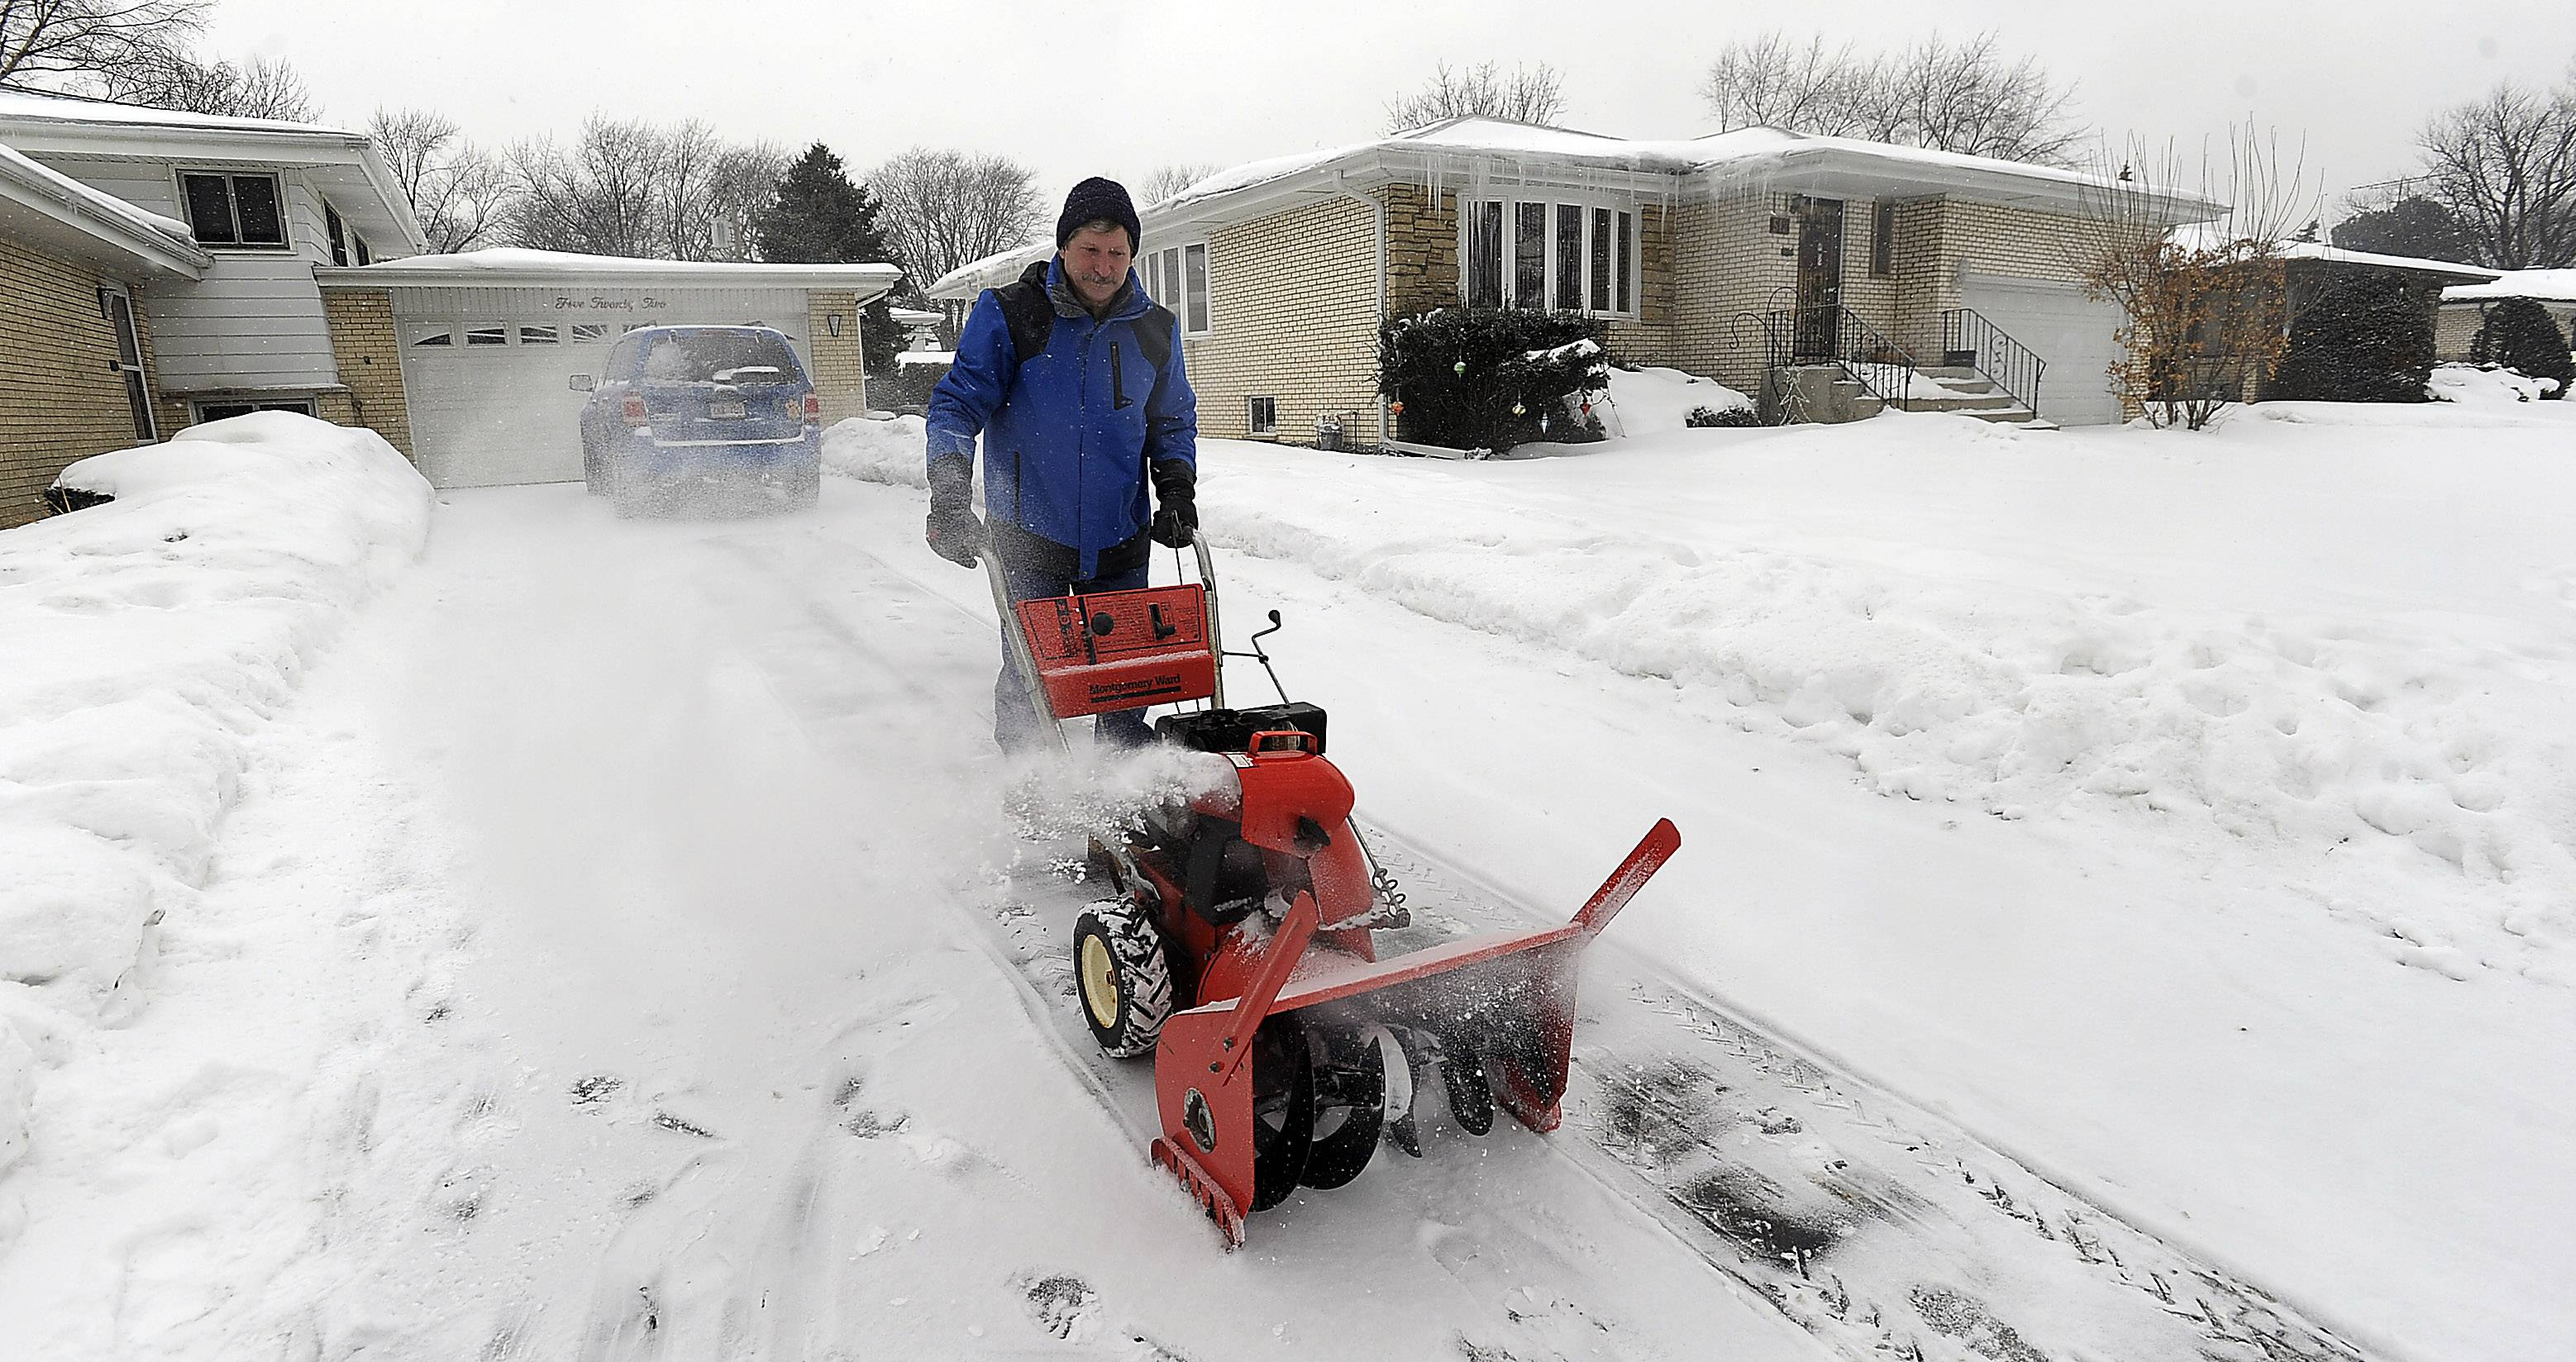 Clearing this driveway for an elderly widow in his Des Plaines neighborhood is just part of being a good neighbor, says Jim Sieburg, who has been snowplowing the driveways and sidewalks for many of his neighbors during the years.